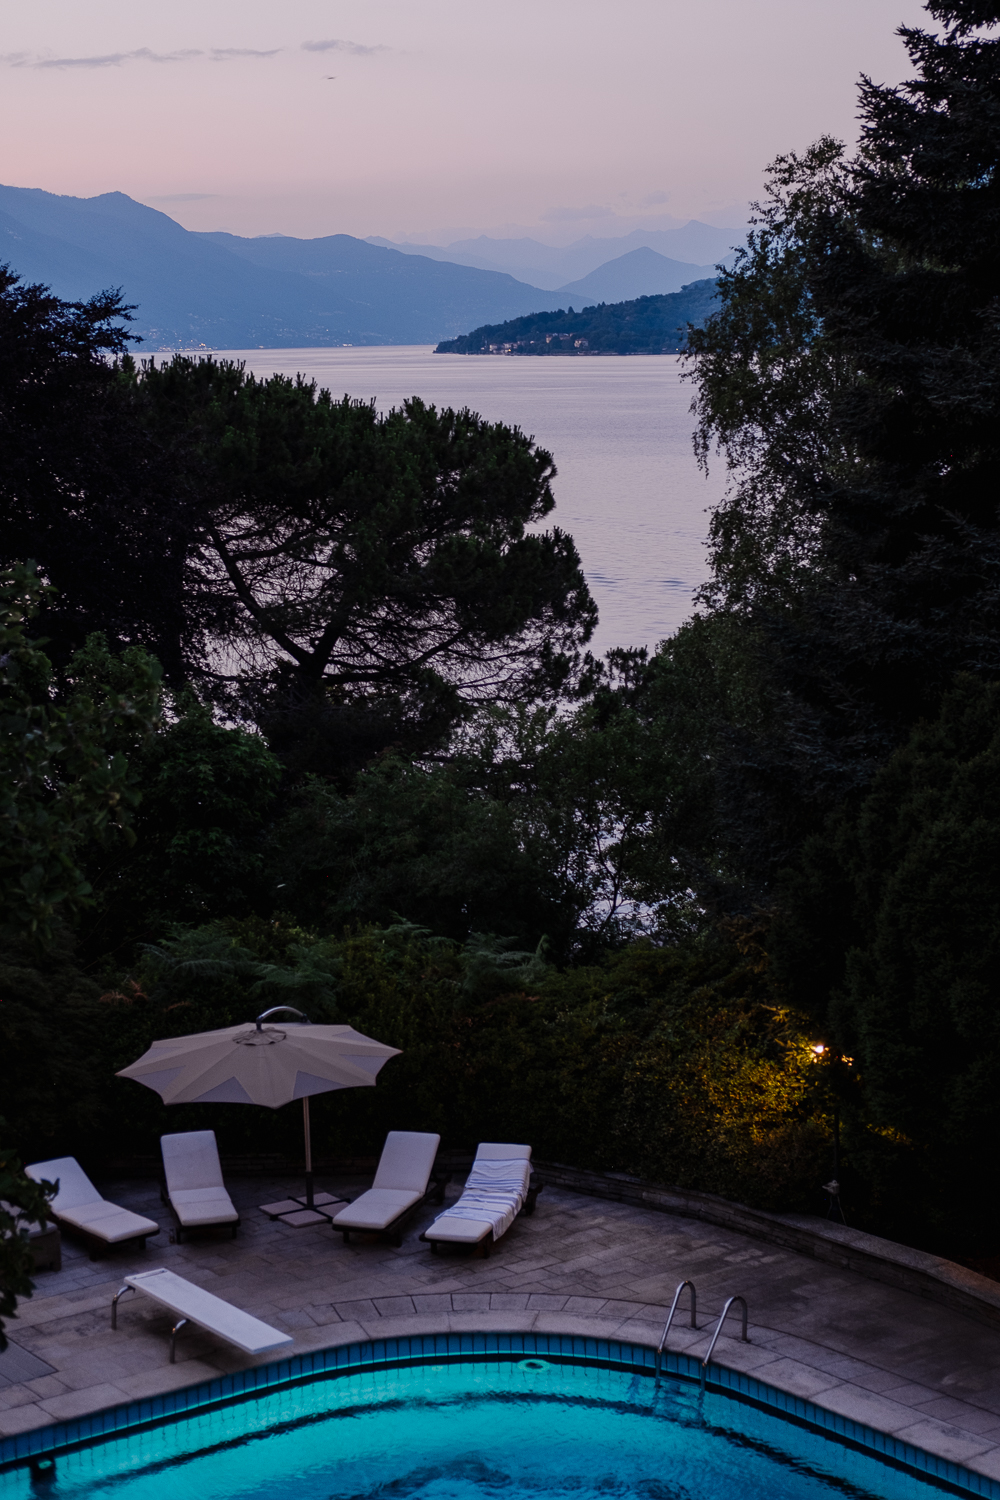 Lake Maggiore from one of the many private villas dotted along the shoreline